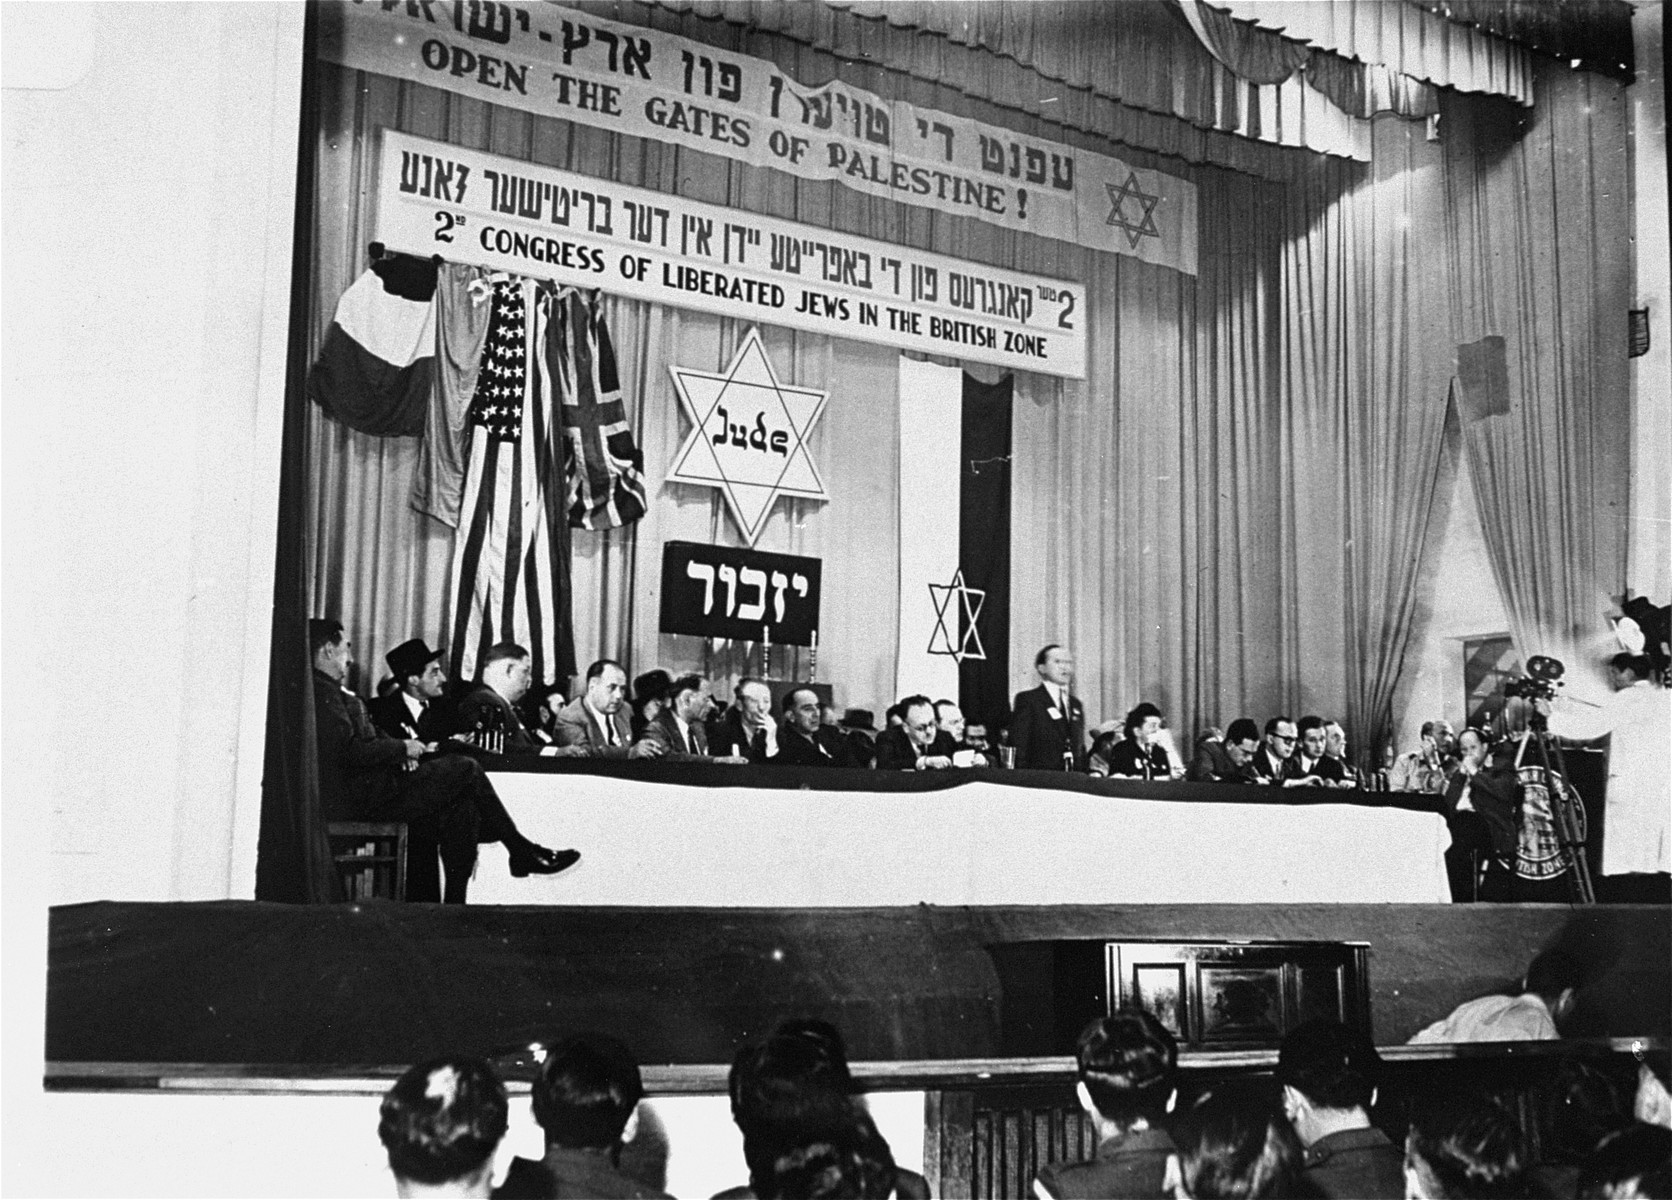 Josef Rosensaft delivers the opening address at the Second Congress of Liberated Jews in the British Zone.  Among those pictured are: Berel Laufer (sixth from the left with a cigarette); Rabbi Helfgott (second from left), Norbert Wollheim (partially obscured); Hadassa (Bimko) Rosensaft (to the right of the speaker); Berel Laufer; David Rosenthal; Pawel Trepman; and Raphael Olewski.